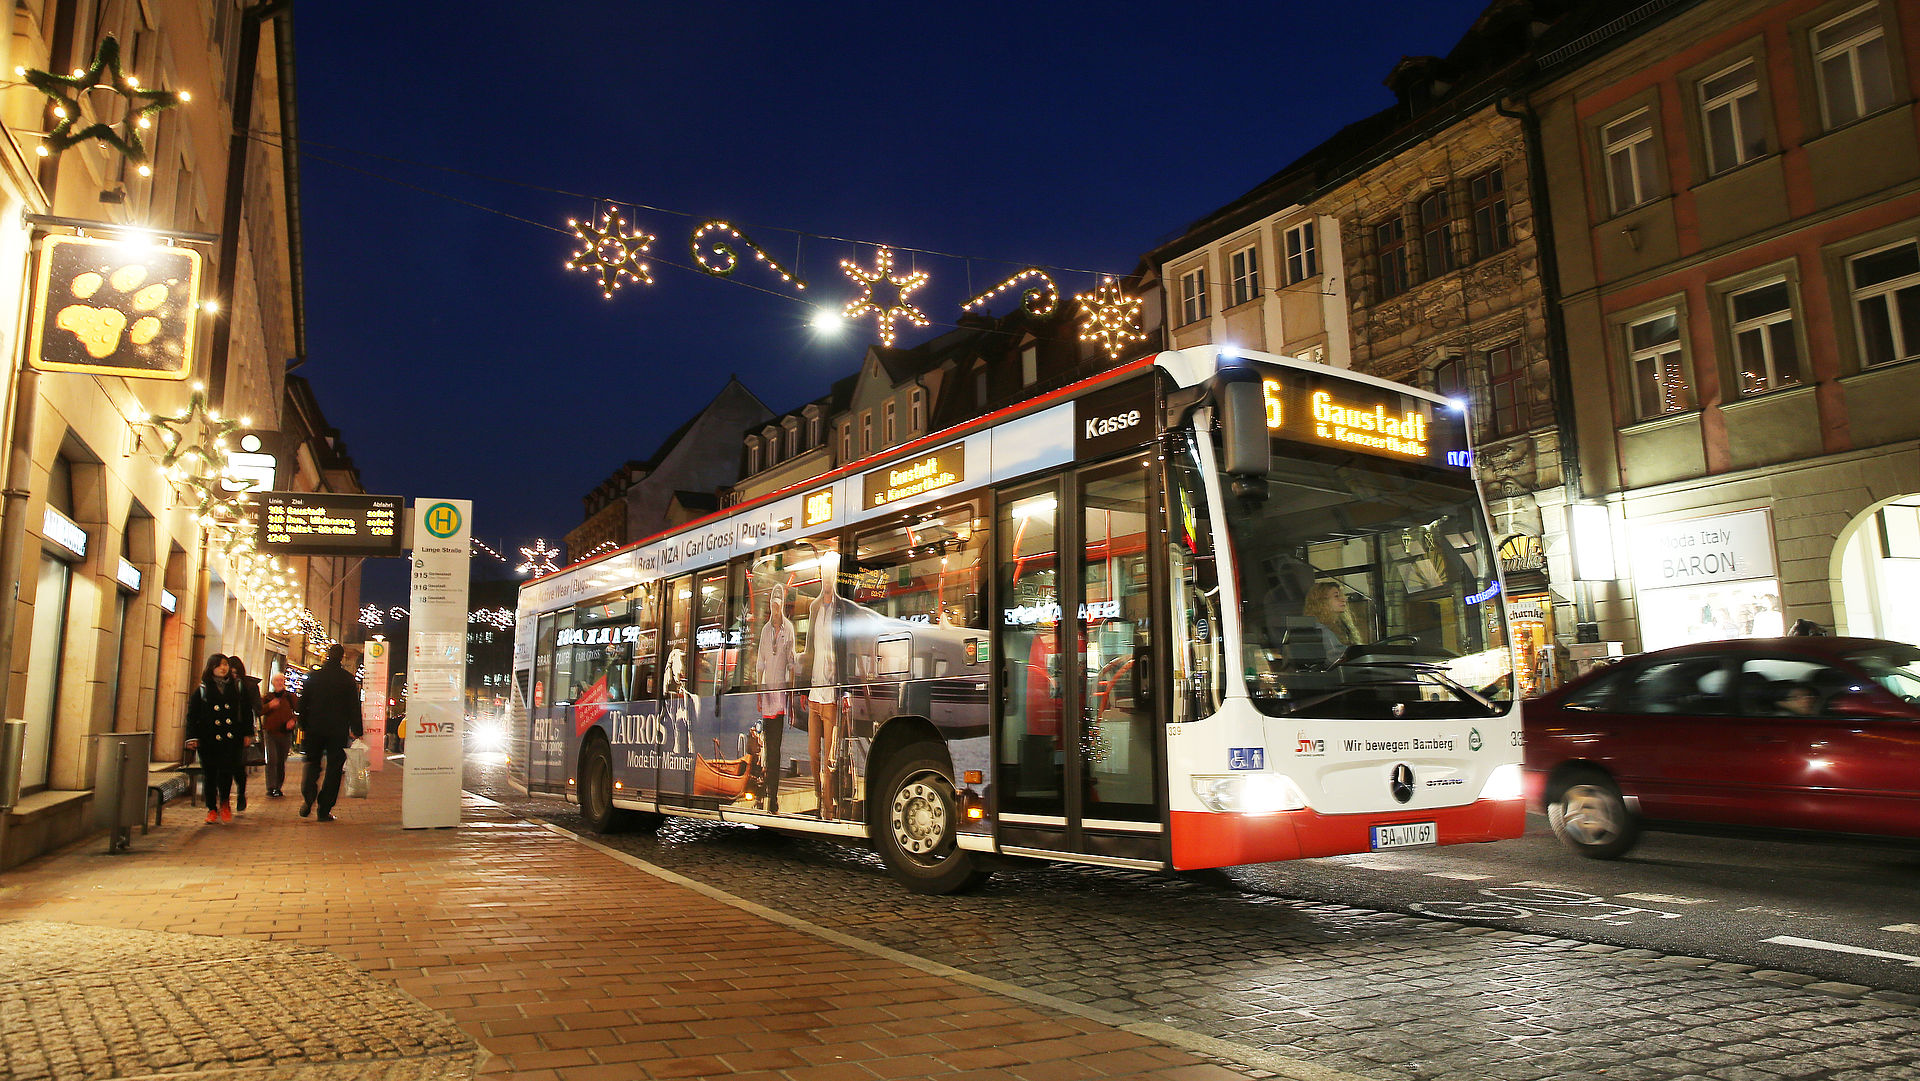 Bus in Bamberg mit Adventsbeleuchtung